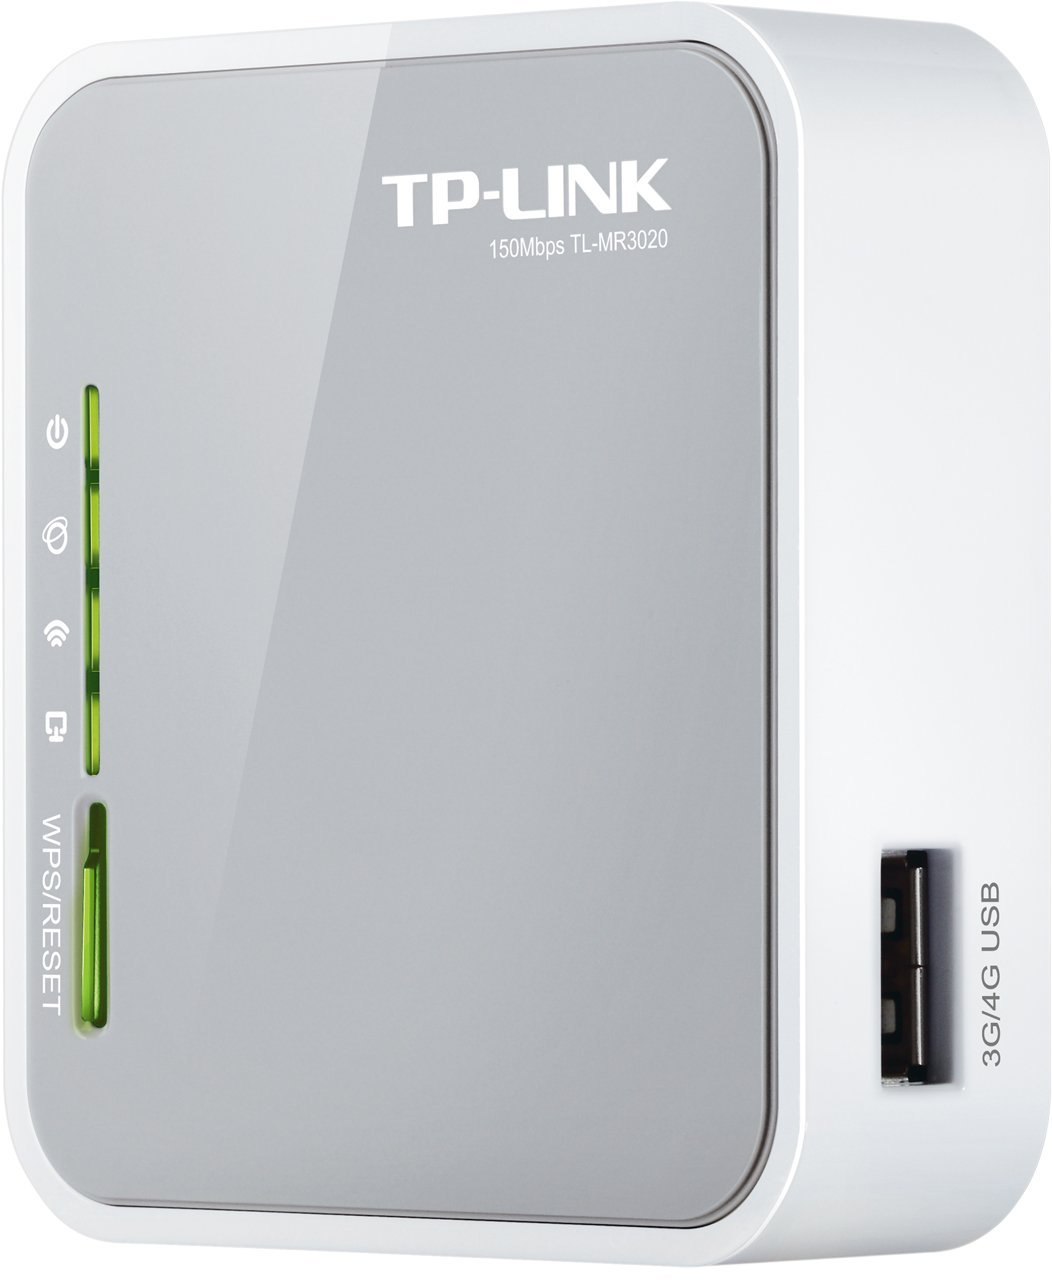 TL-MR3020 Router Portable 3g/4g